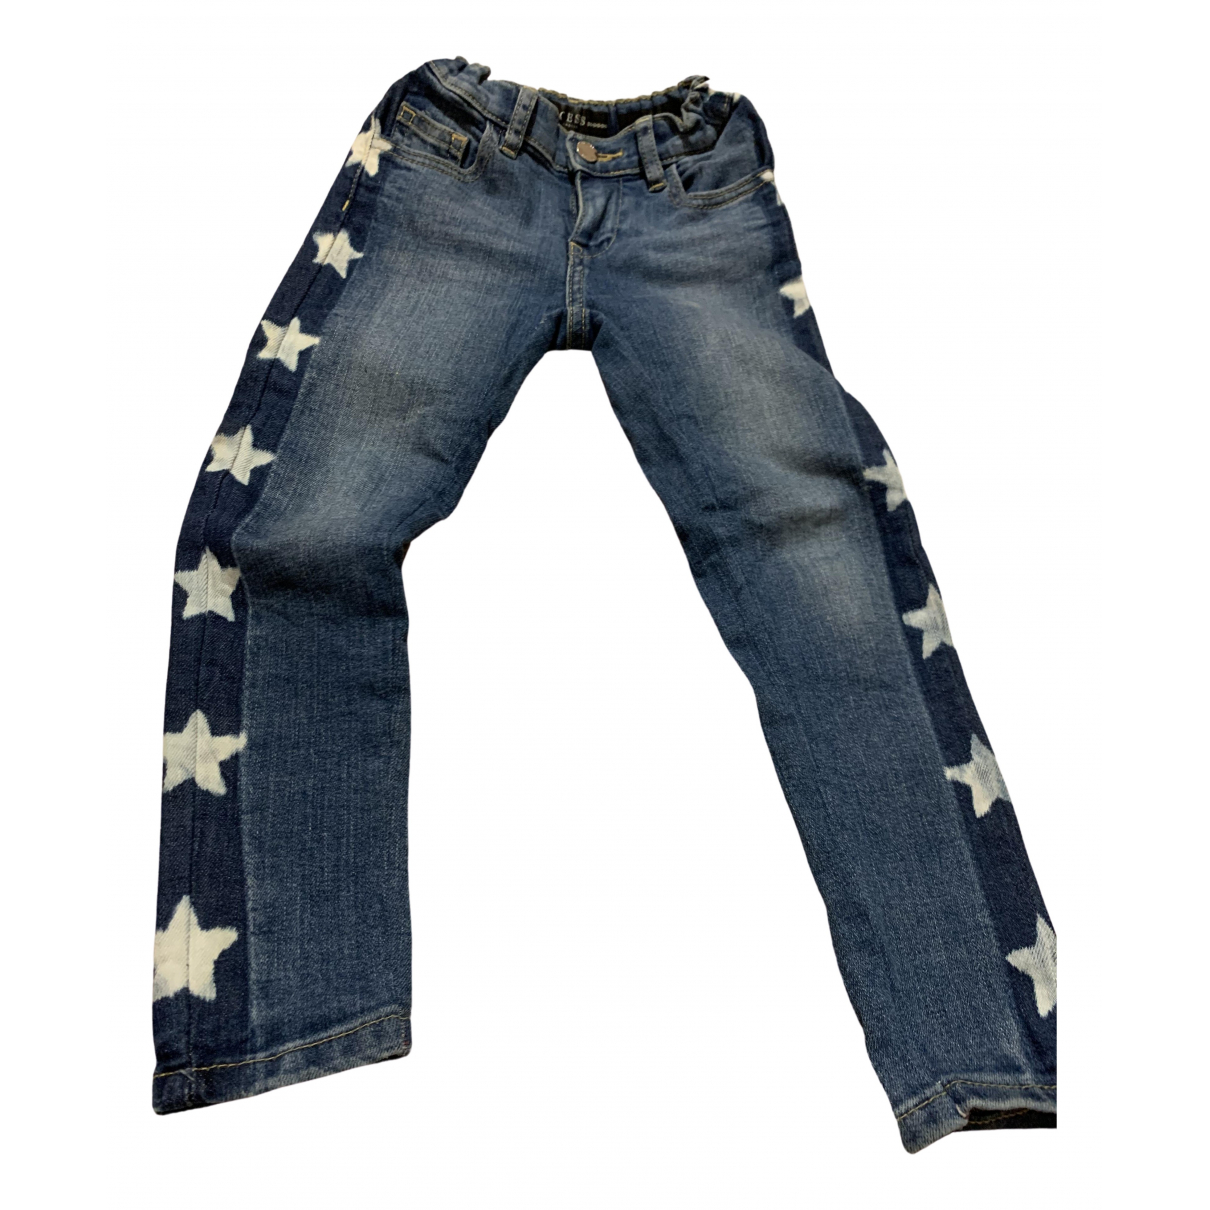 Guess \N Denim - Jeans Trousers for Kids 4 years - up to 102cm FR